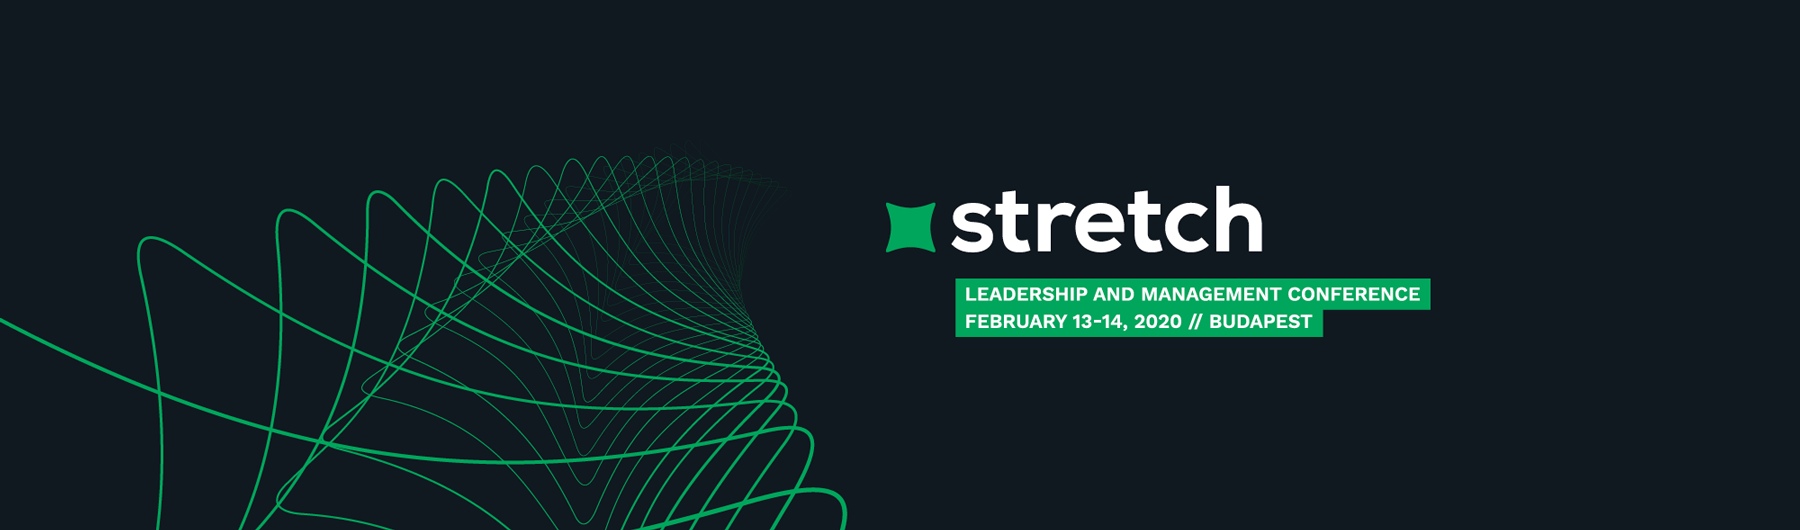 Stretch Conference 2020